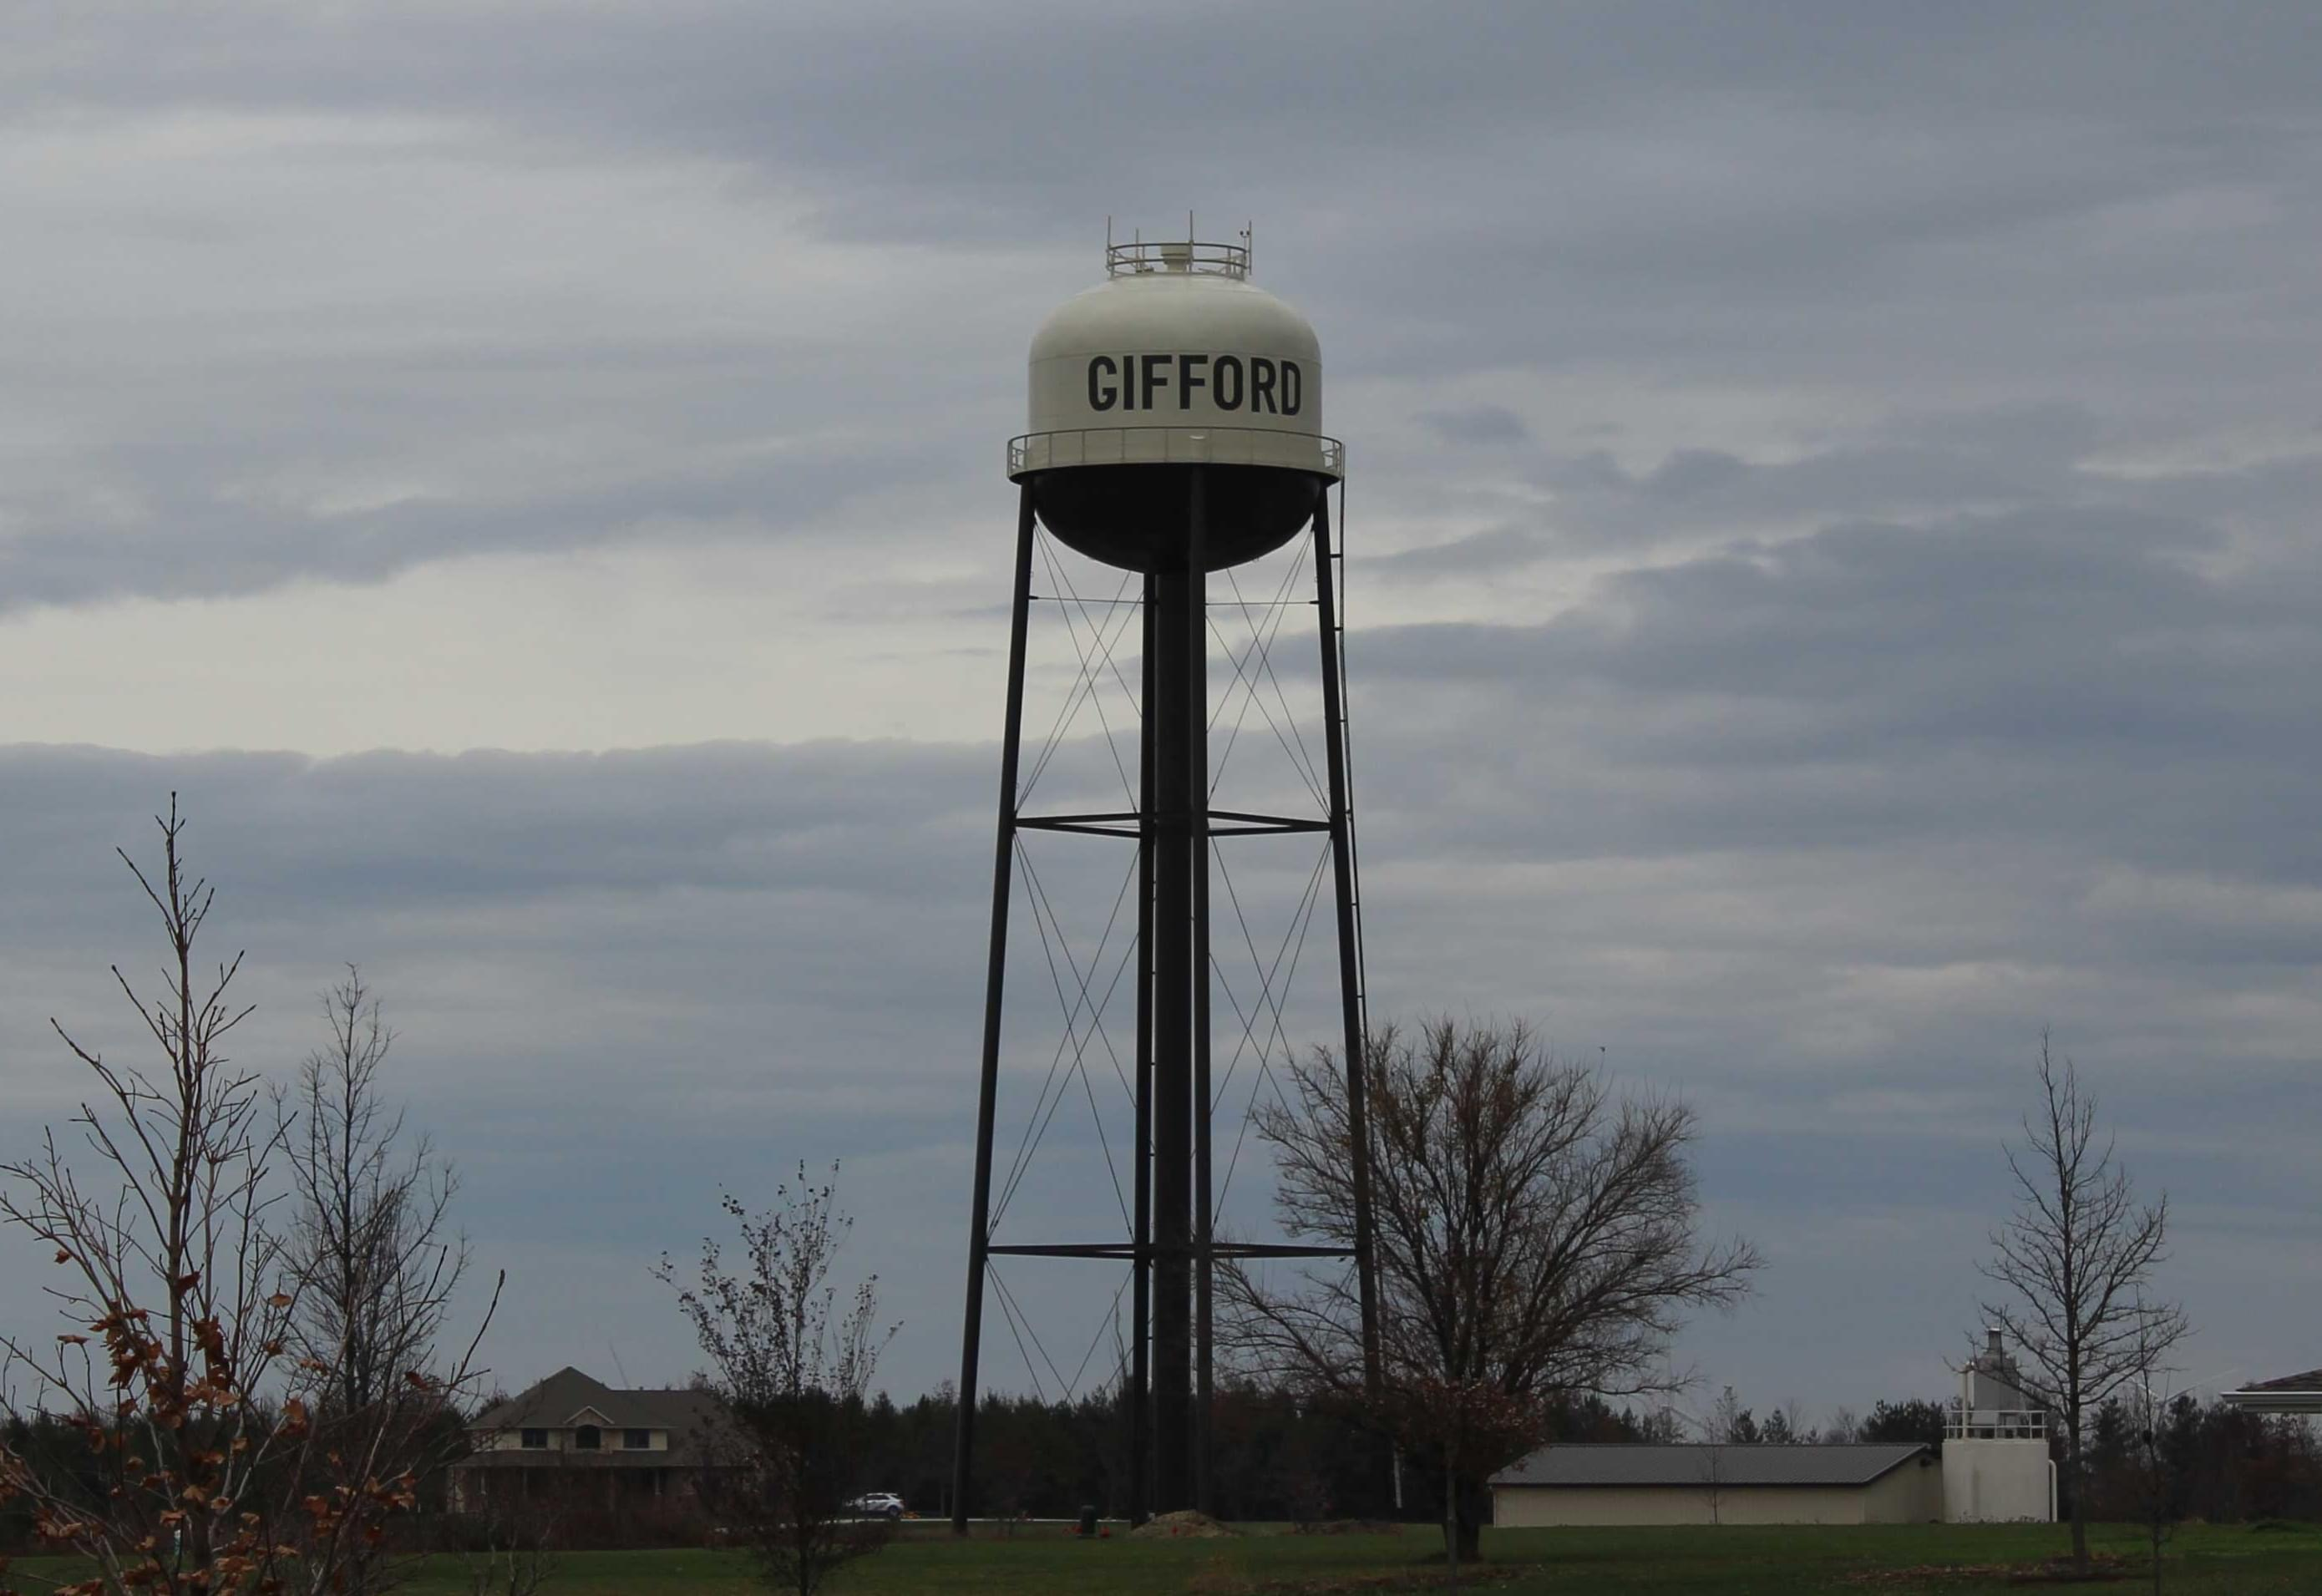 The new water tower in Gifford, which is expected to operational in a few weeks.